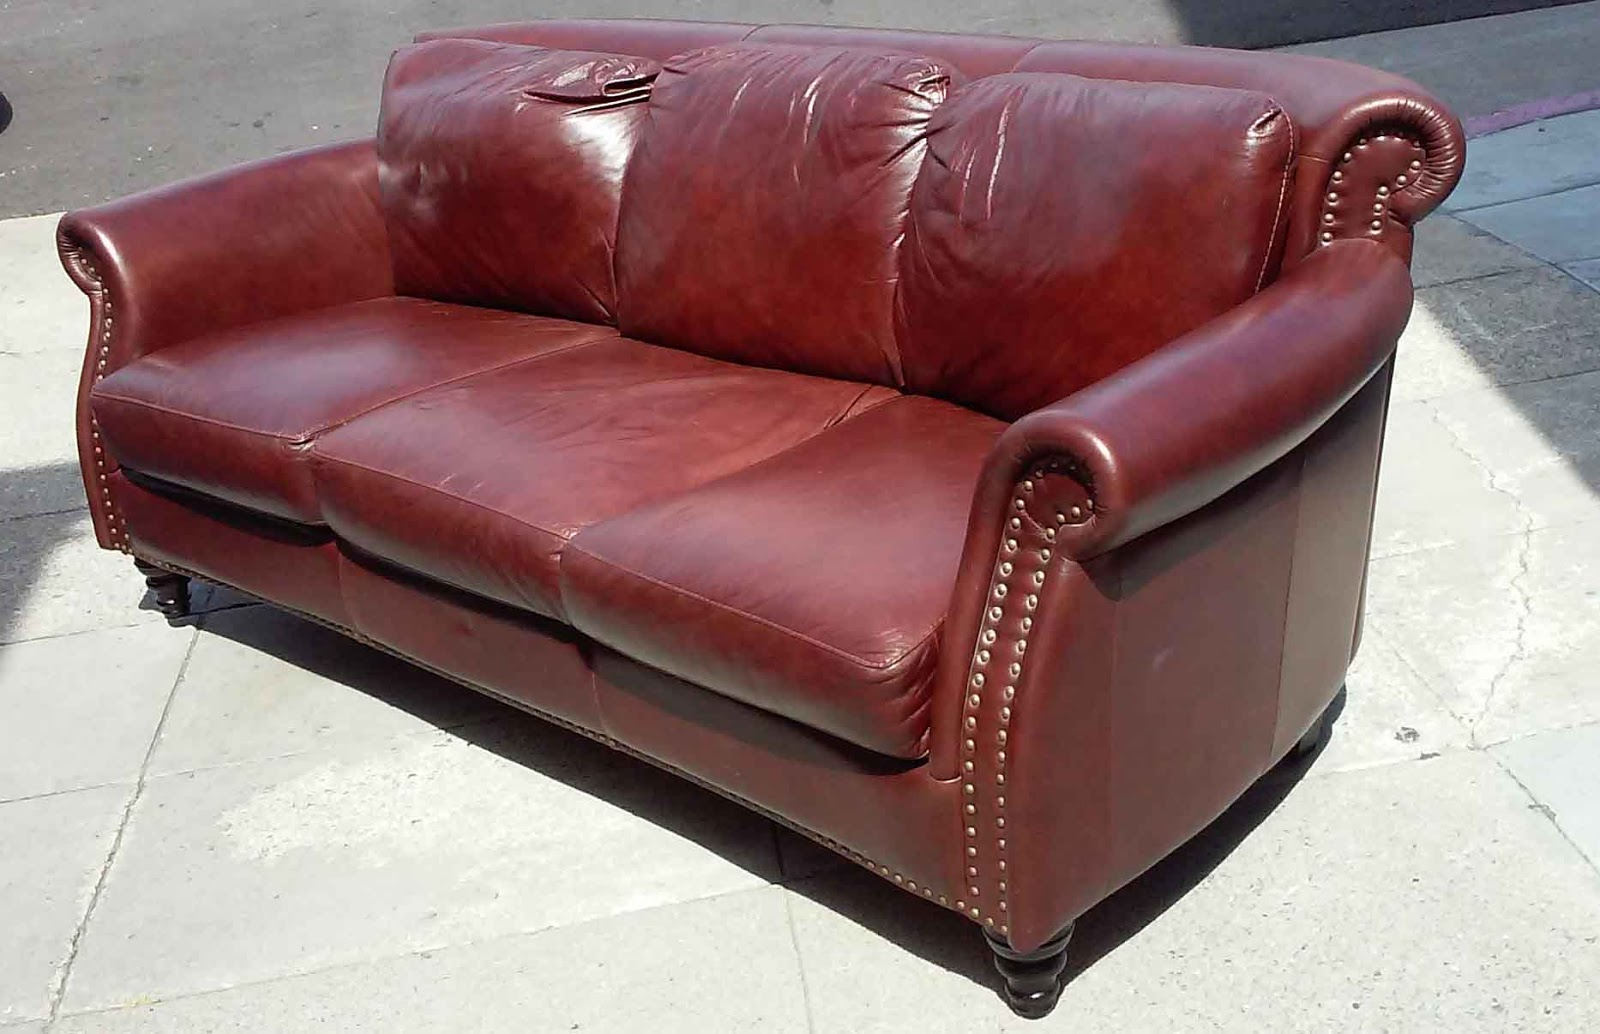 Uhuru Furniture Collectibles Sold Antique Style Burgundy Leather Sofa 180